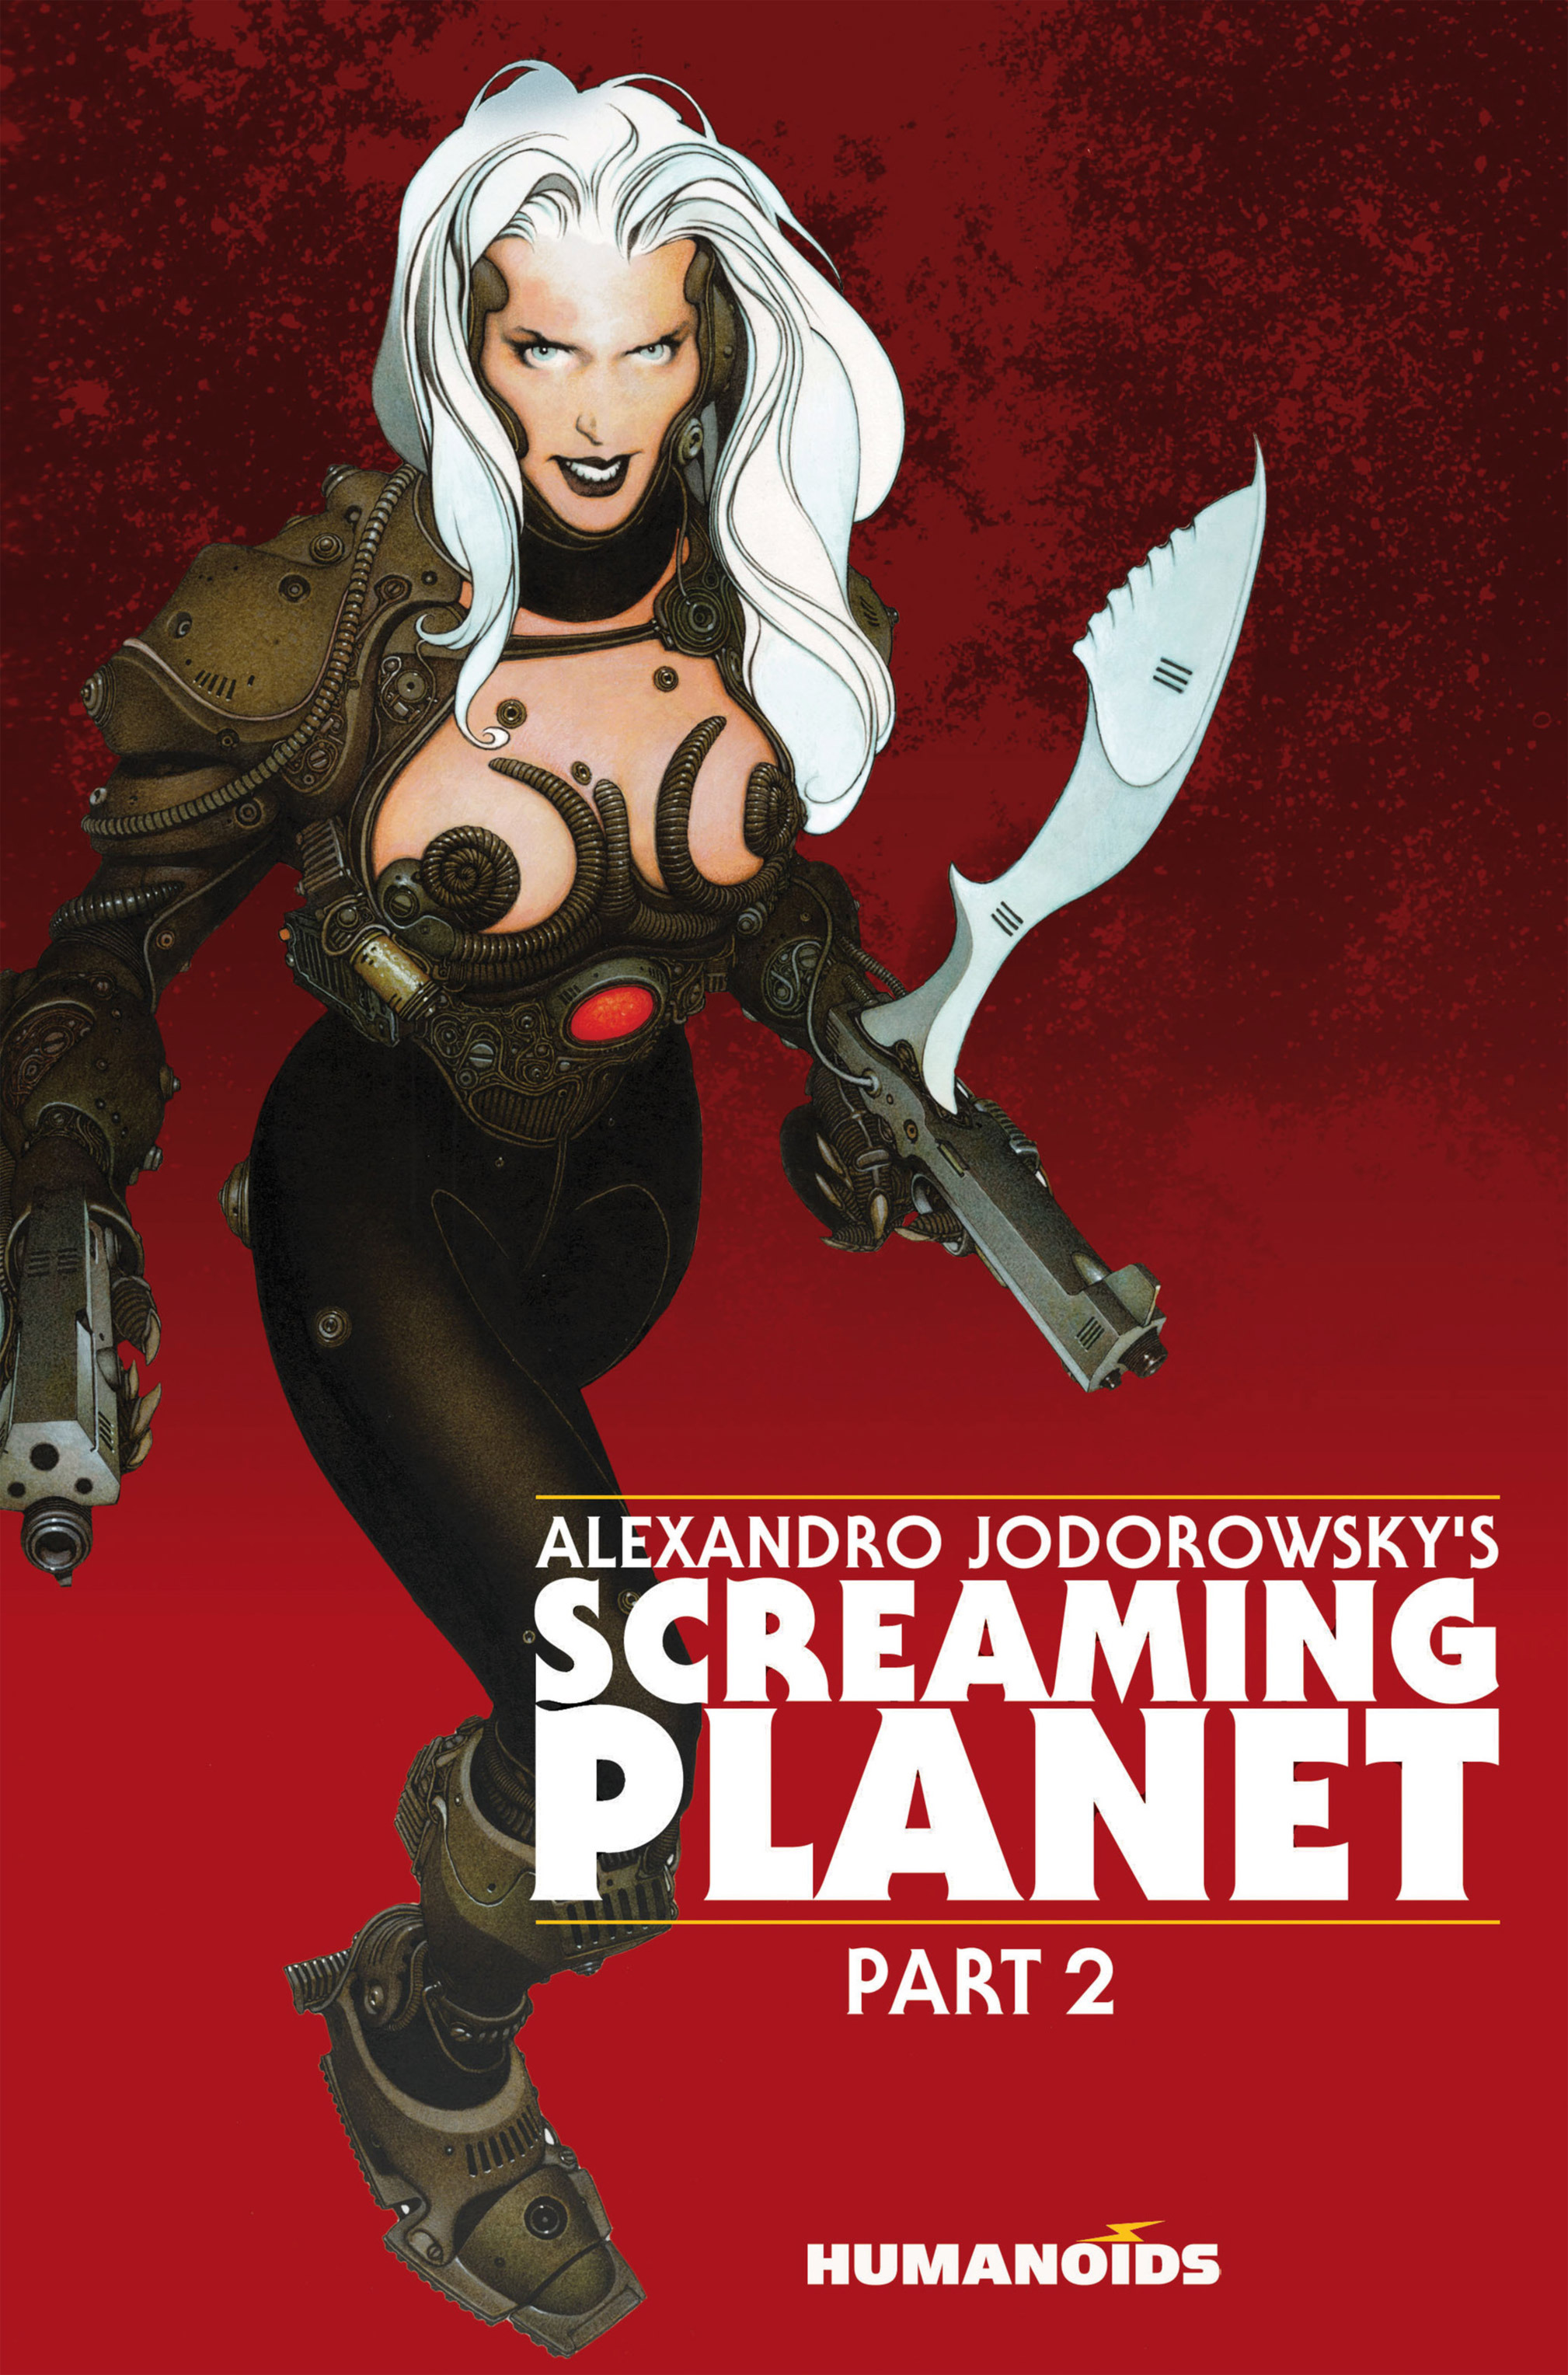 Read online Alejandro Jodorowsky's Screaming Planet comic -  Issue #2 - 1